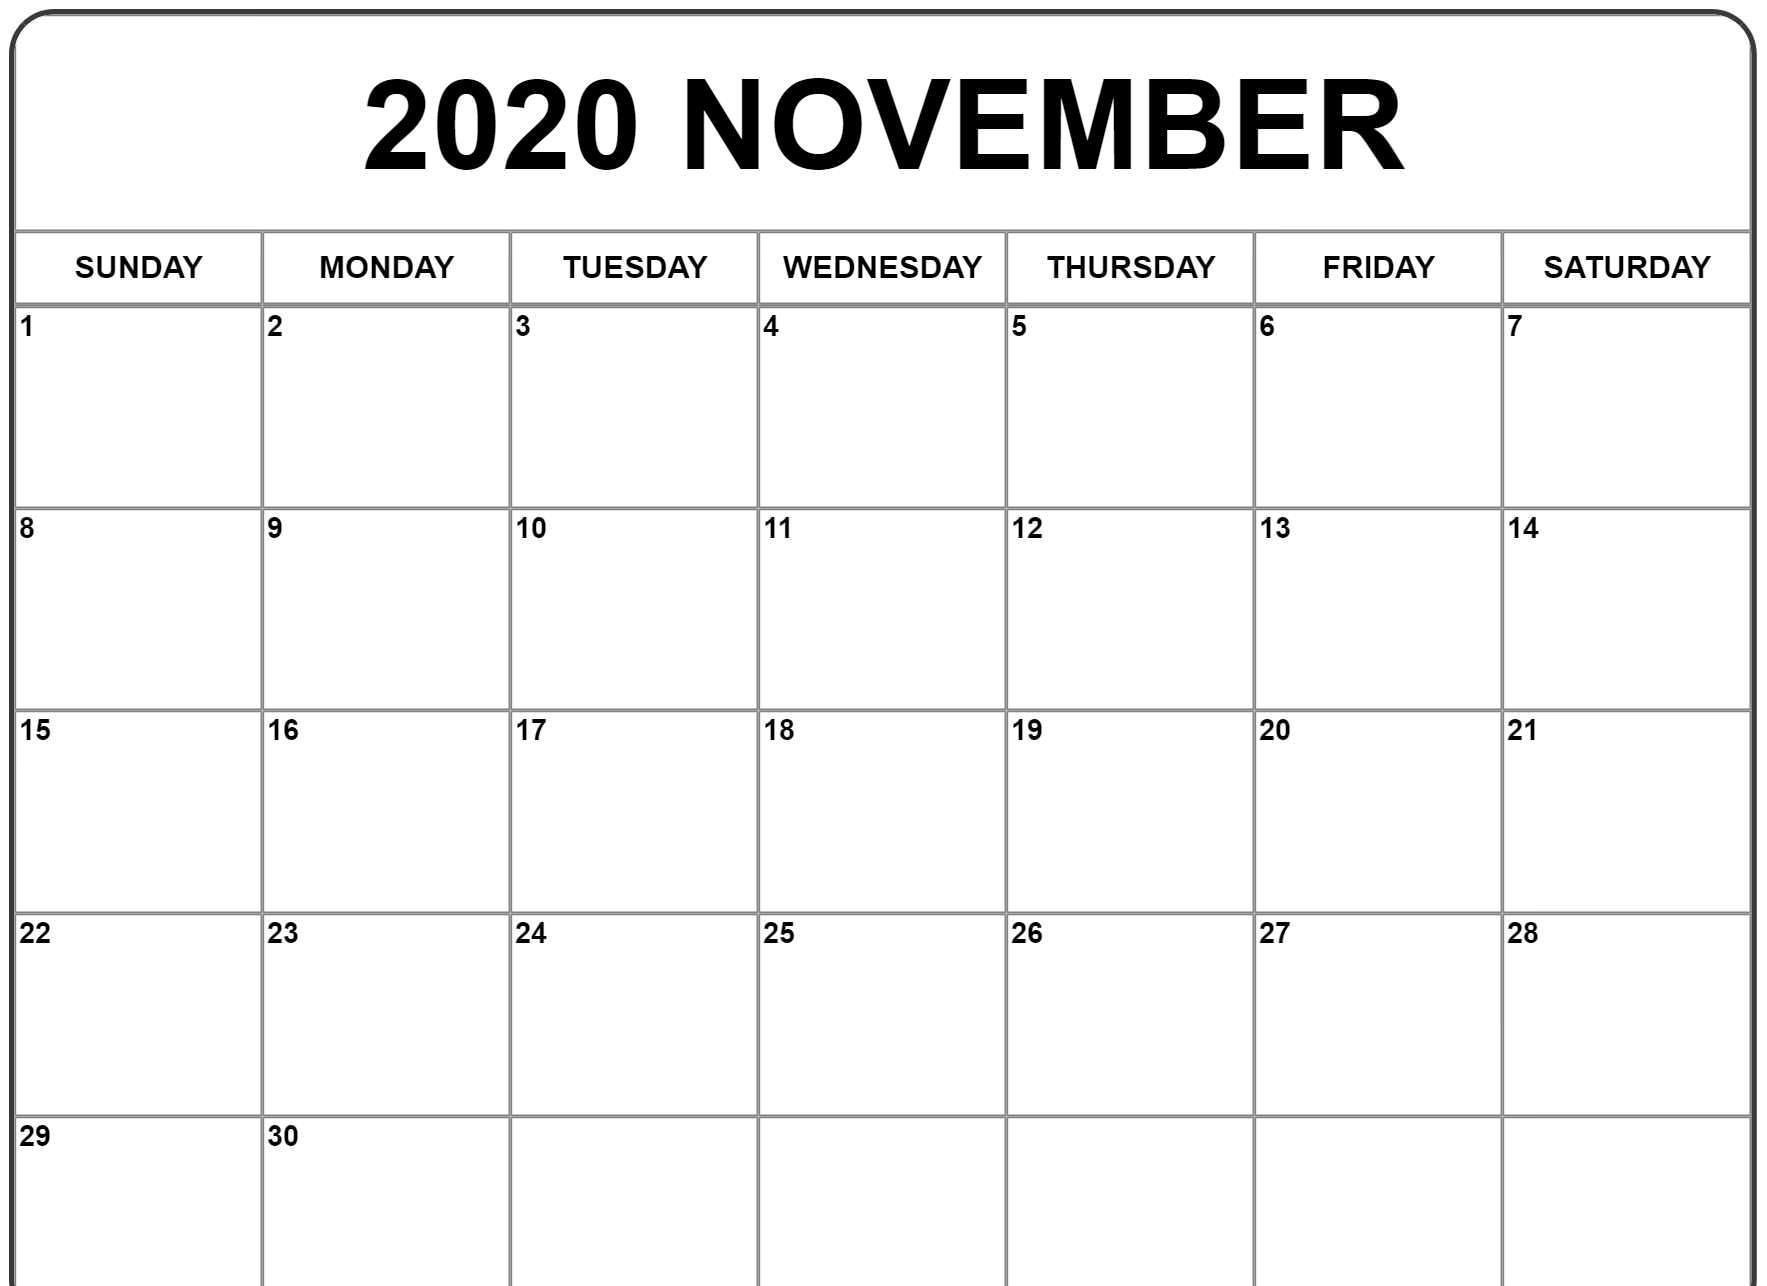 November 2020 Calendar | Monthly Calendar Template, Free